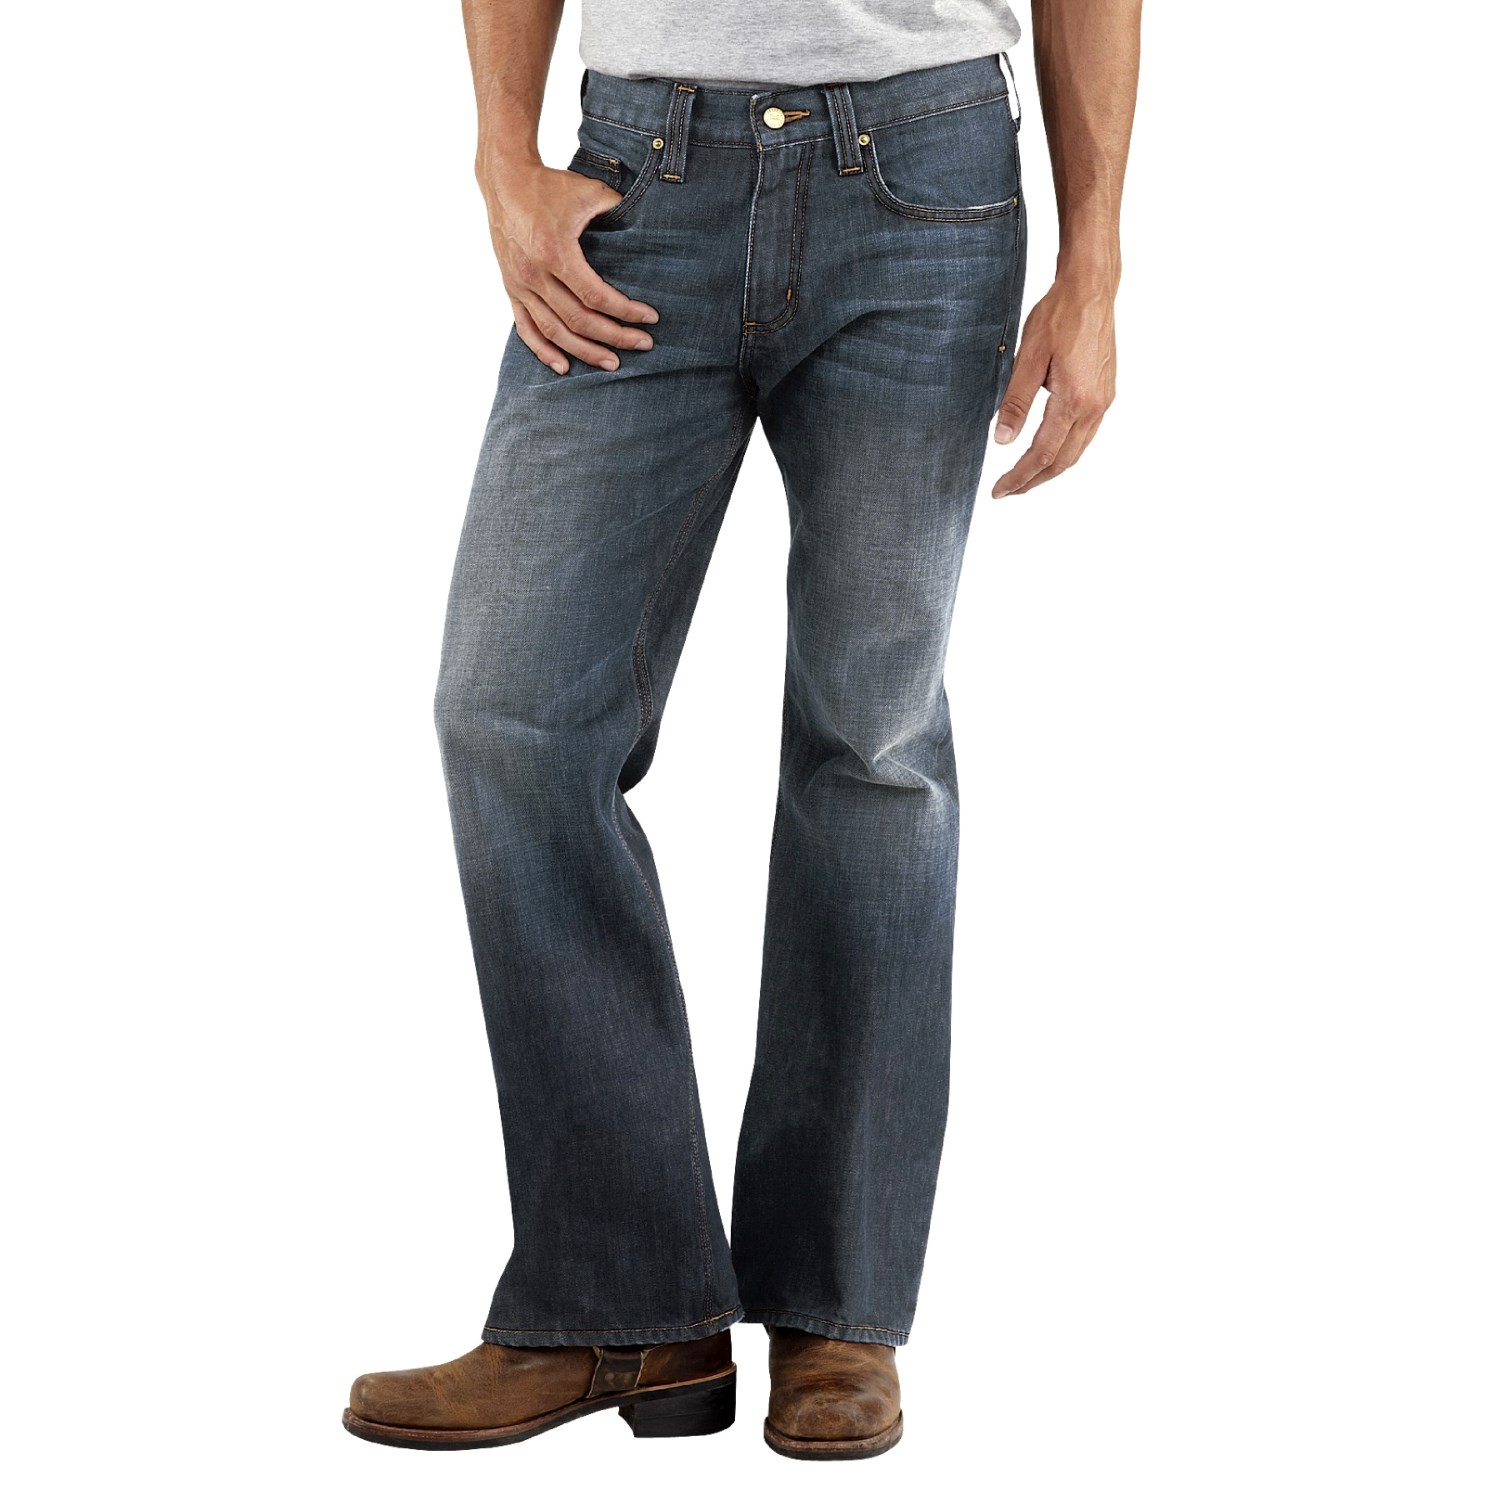 Carhartt Series 1889 Jeans (For Men) 3451J